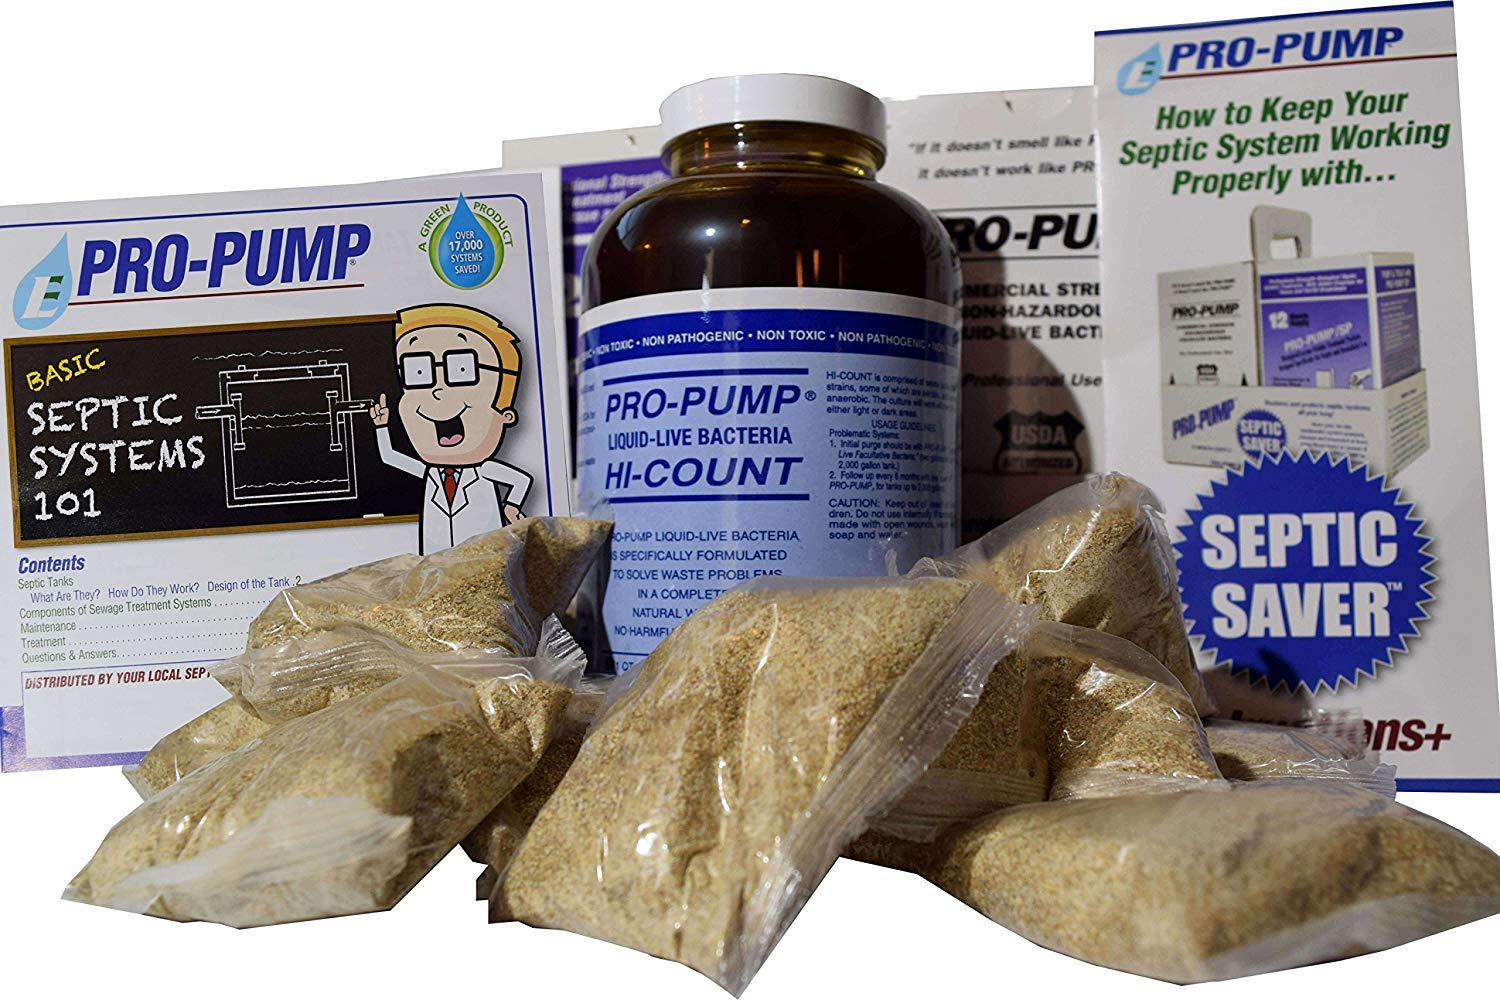 Pro Pump Septic Tank Treatment-1 Year Supply- Upgrade Your System with Flushable Living Bacteria 12 Biodegradable Enzyme Packets and 2 Toilet Leak Detection Tabs. Septic Treatment Made in USA!! by Pro Pump Septic Saver